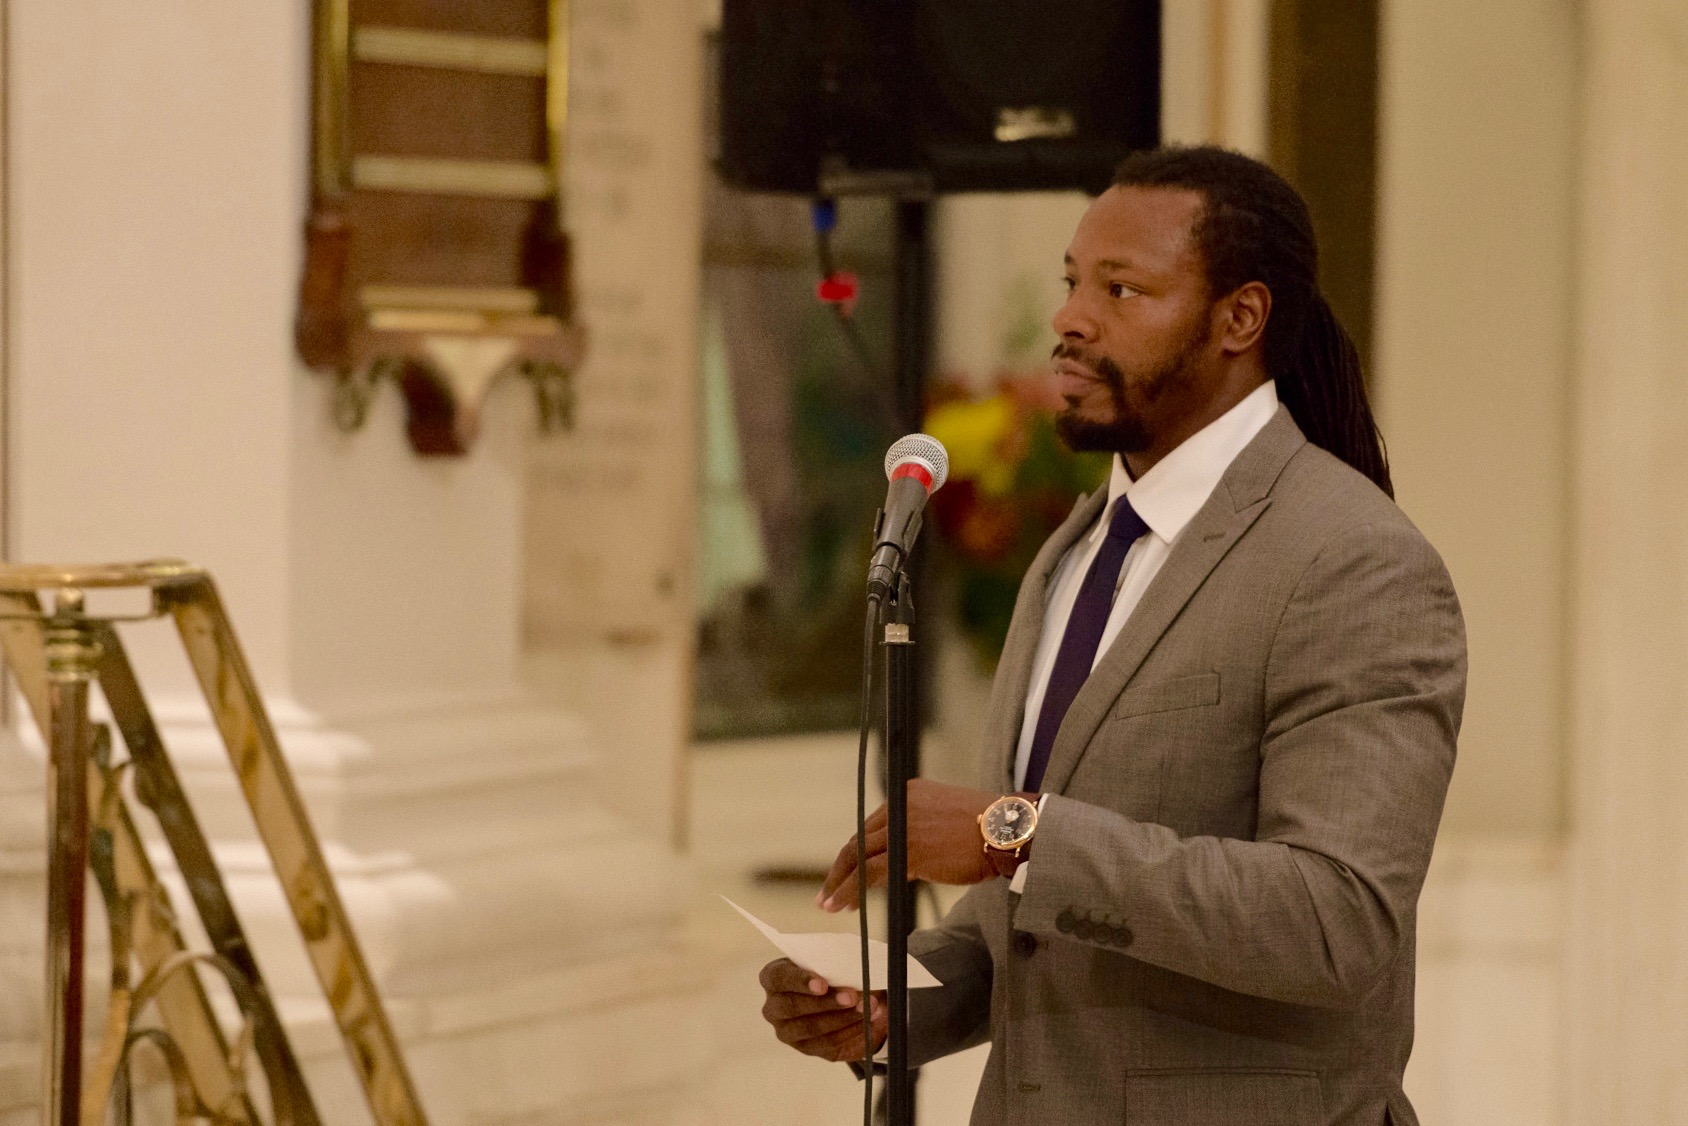 Richmond Justice interviewee  Nic Braswell , a criminal defense attorney, asked candidates how they would support struggling communities in Richmond where rates of incarceration among young people are exceptionally high. (Photo by Matt Cowan for Richmond Justice)